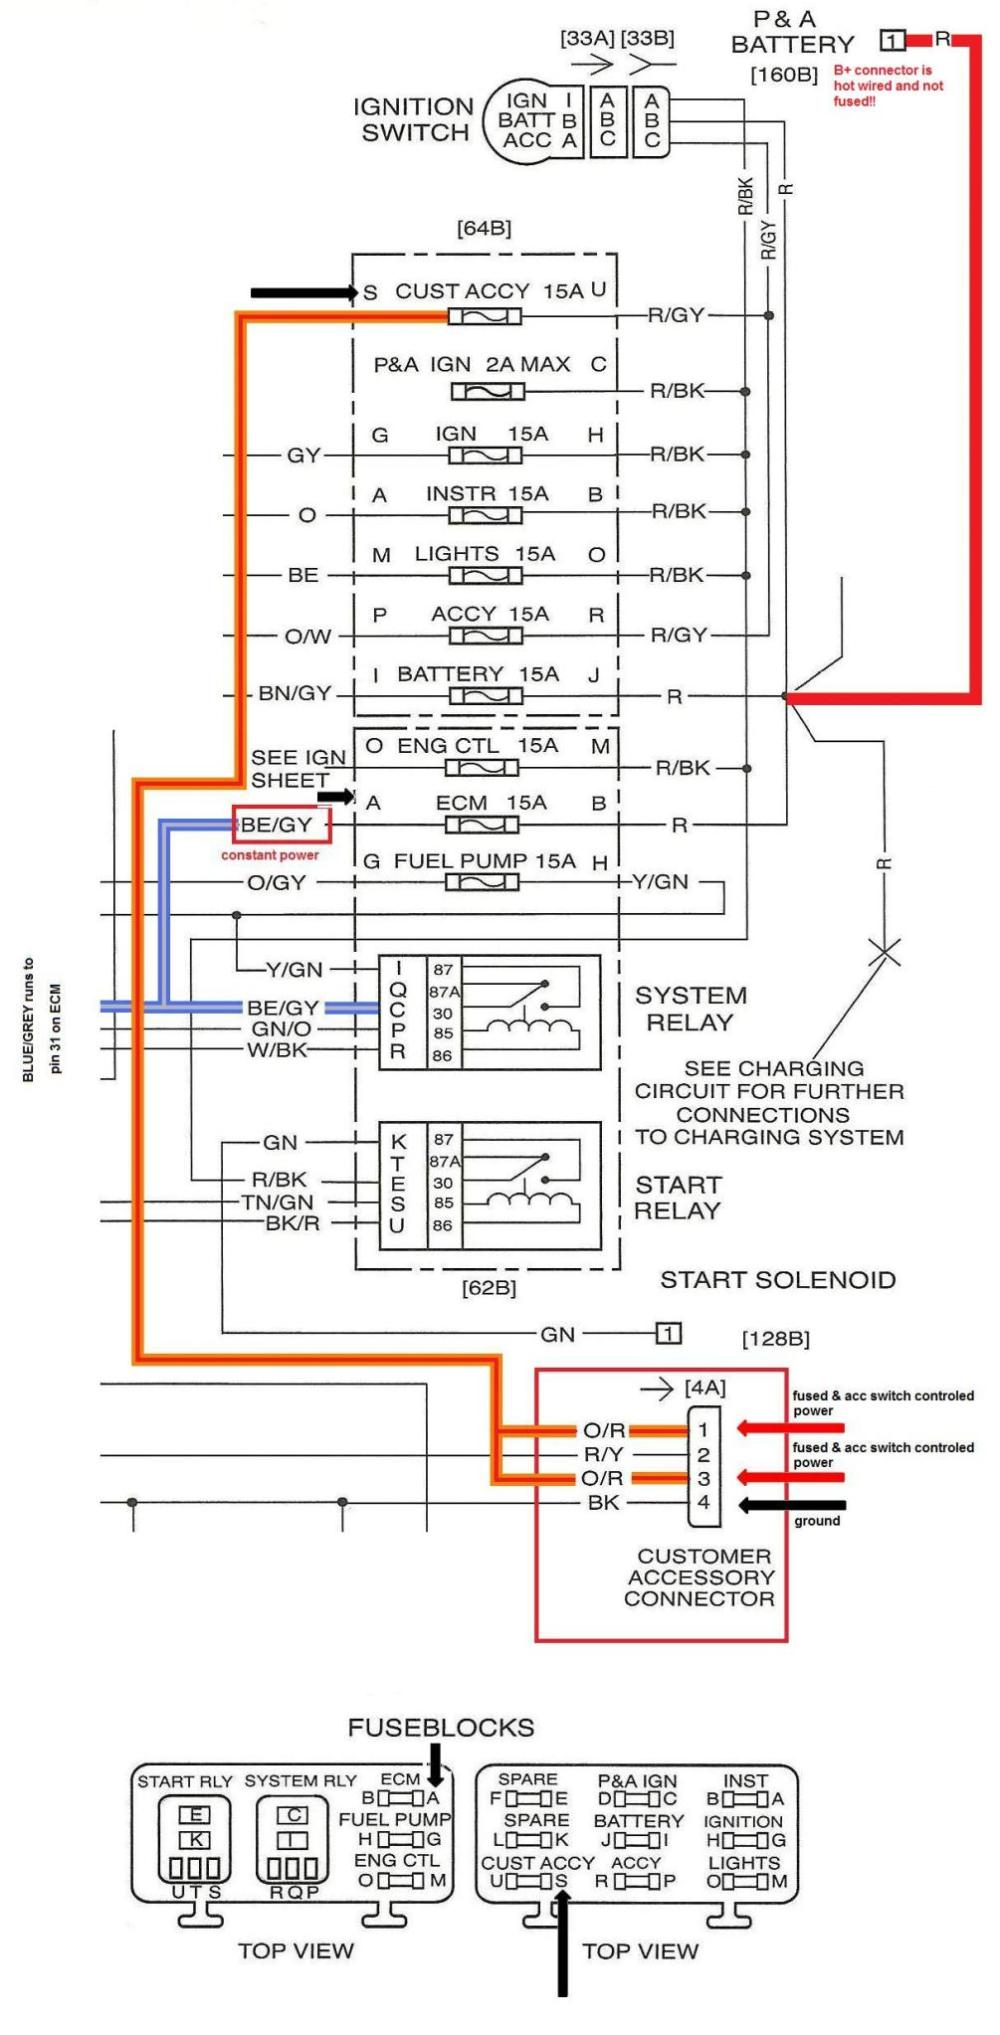 medium resolution of 2015 harley wiring diagram real wiring diagram u2022 rh mcmxliv co 1995 flht specs 1995 flht